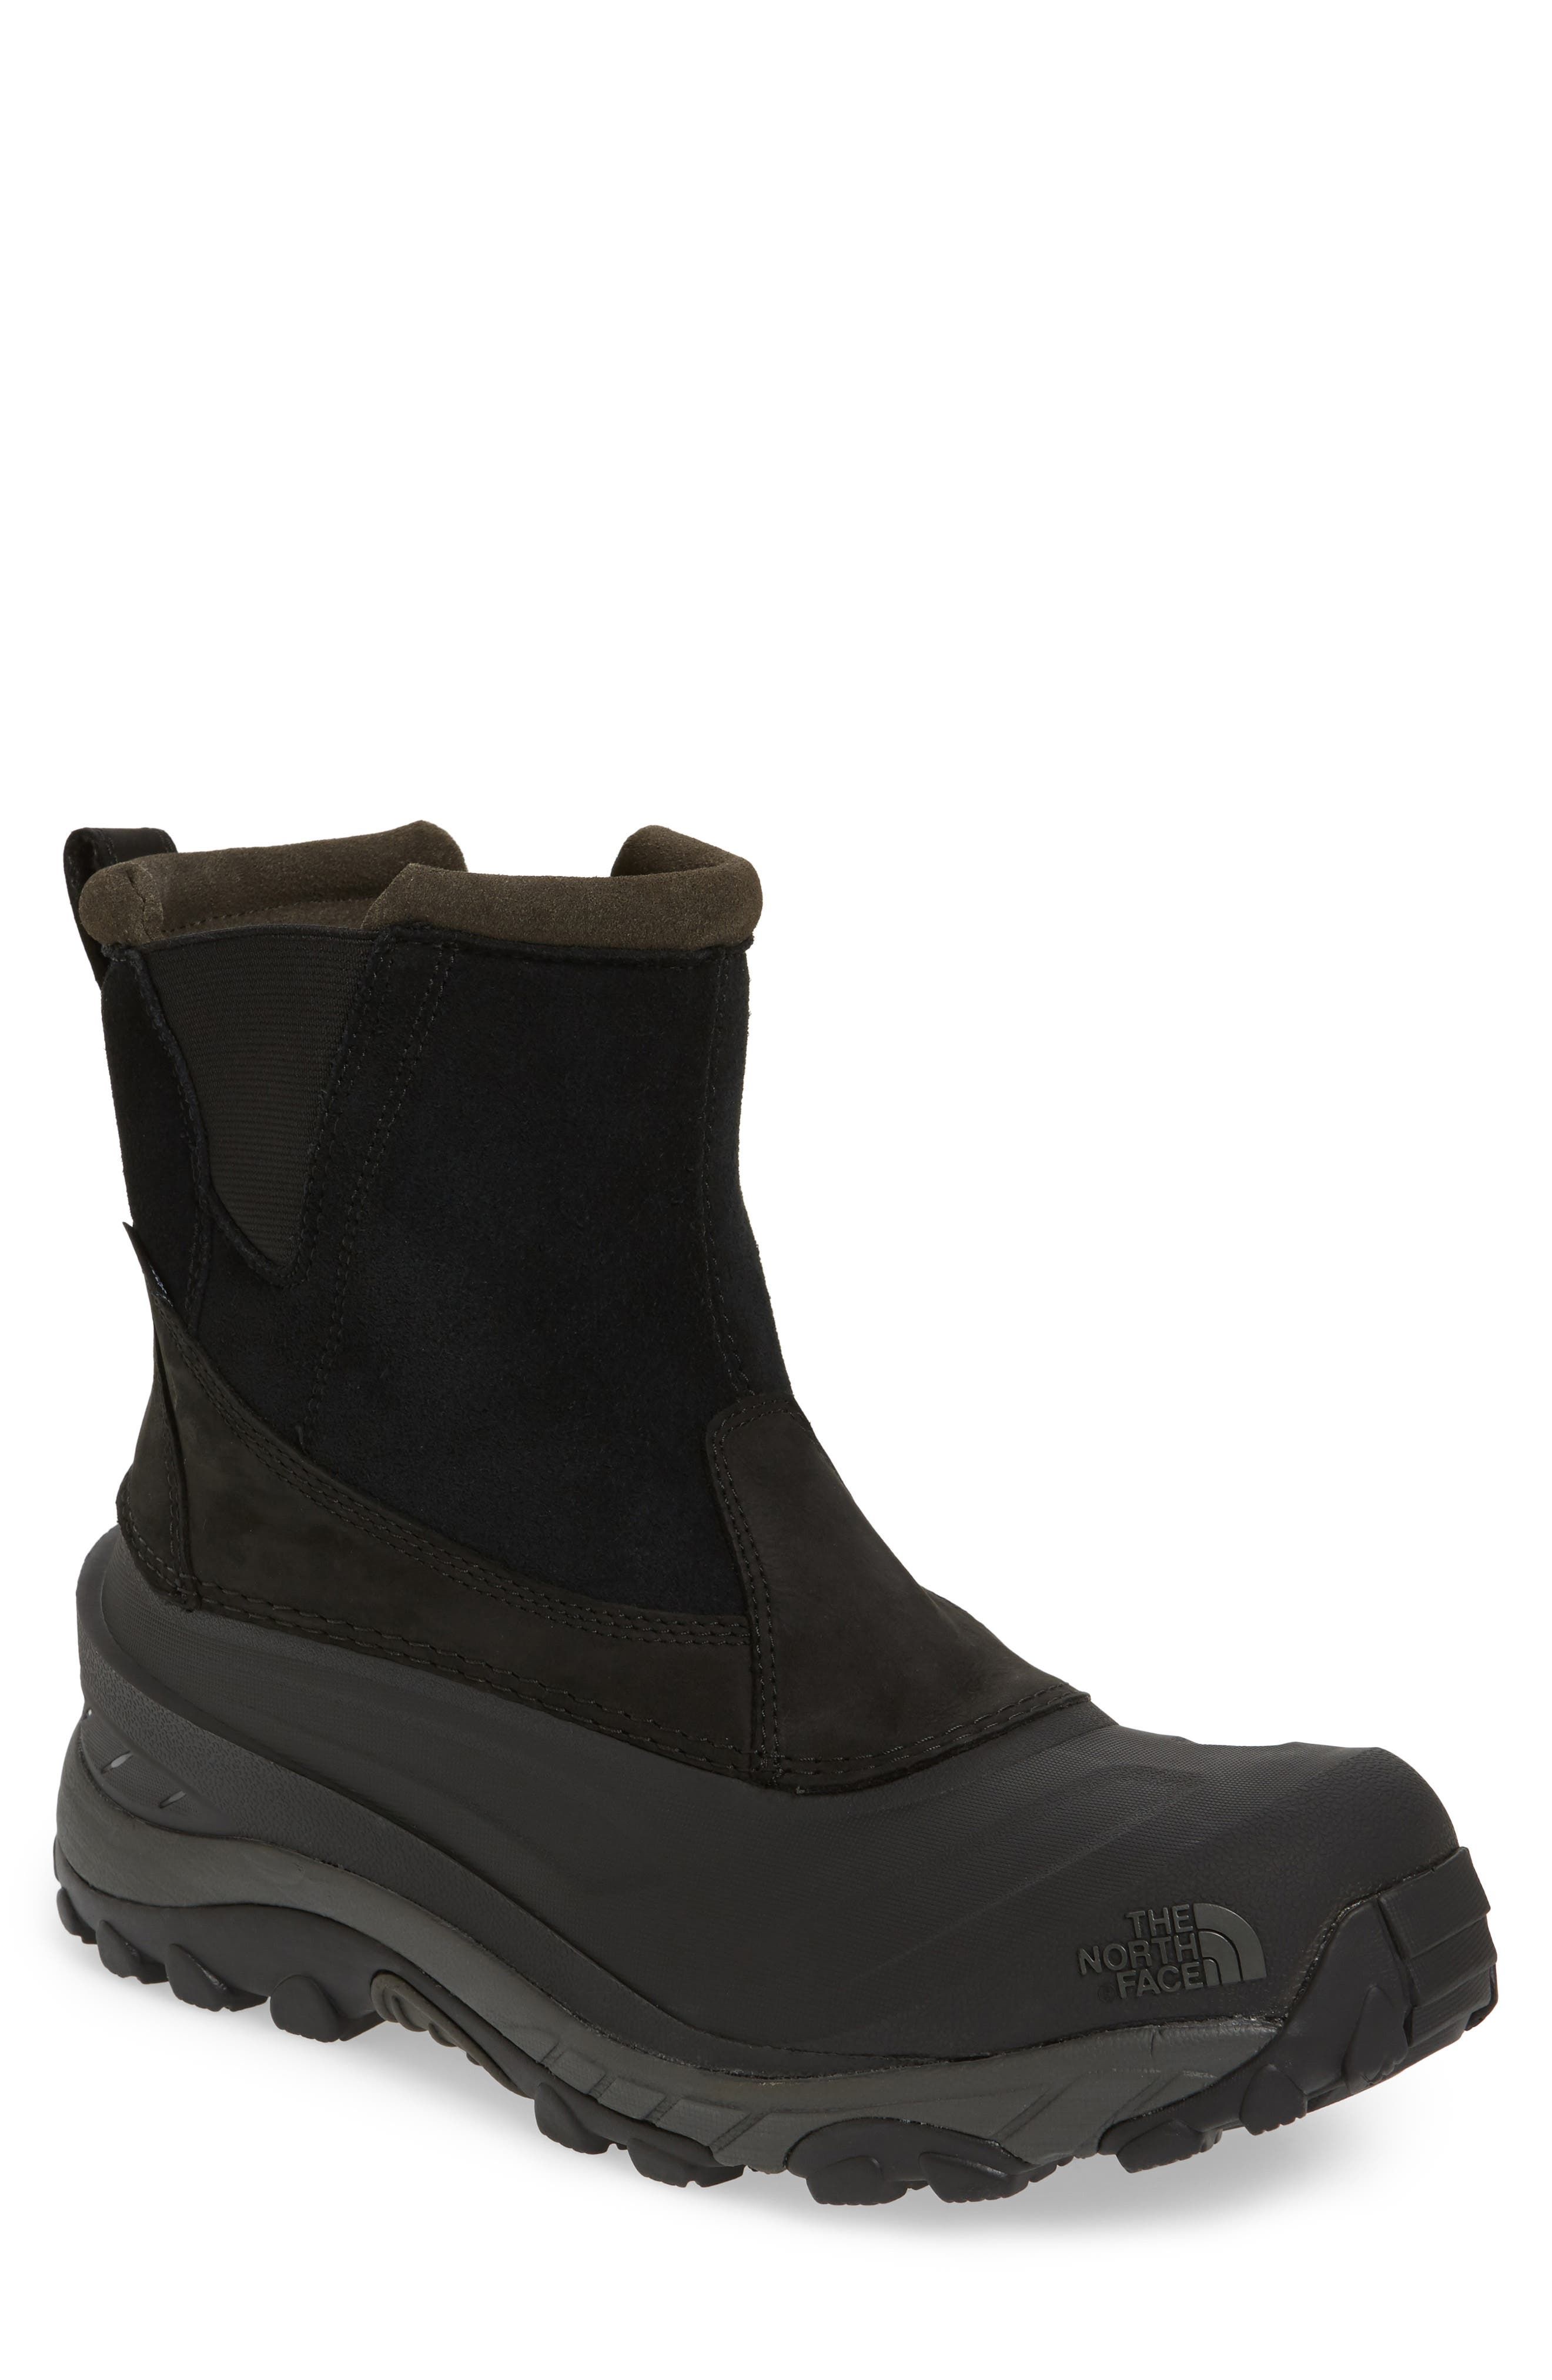 Chilkat III Waterproof Insulated Pull-On Boot,                         Main,                         color, TNF BLACK